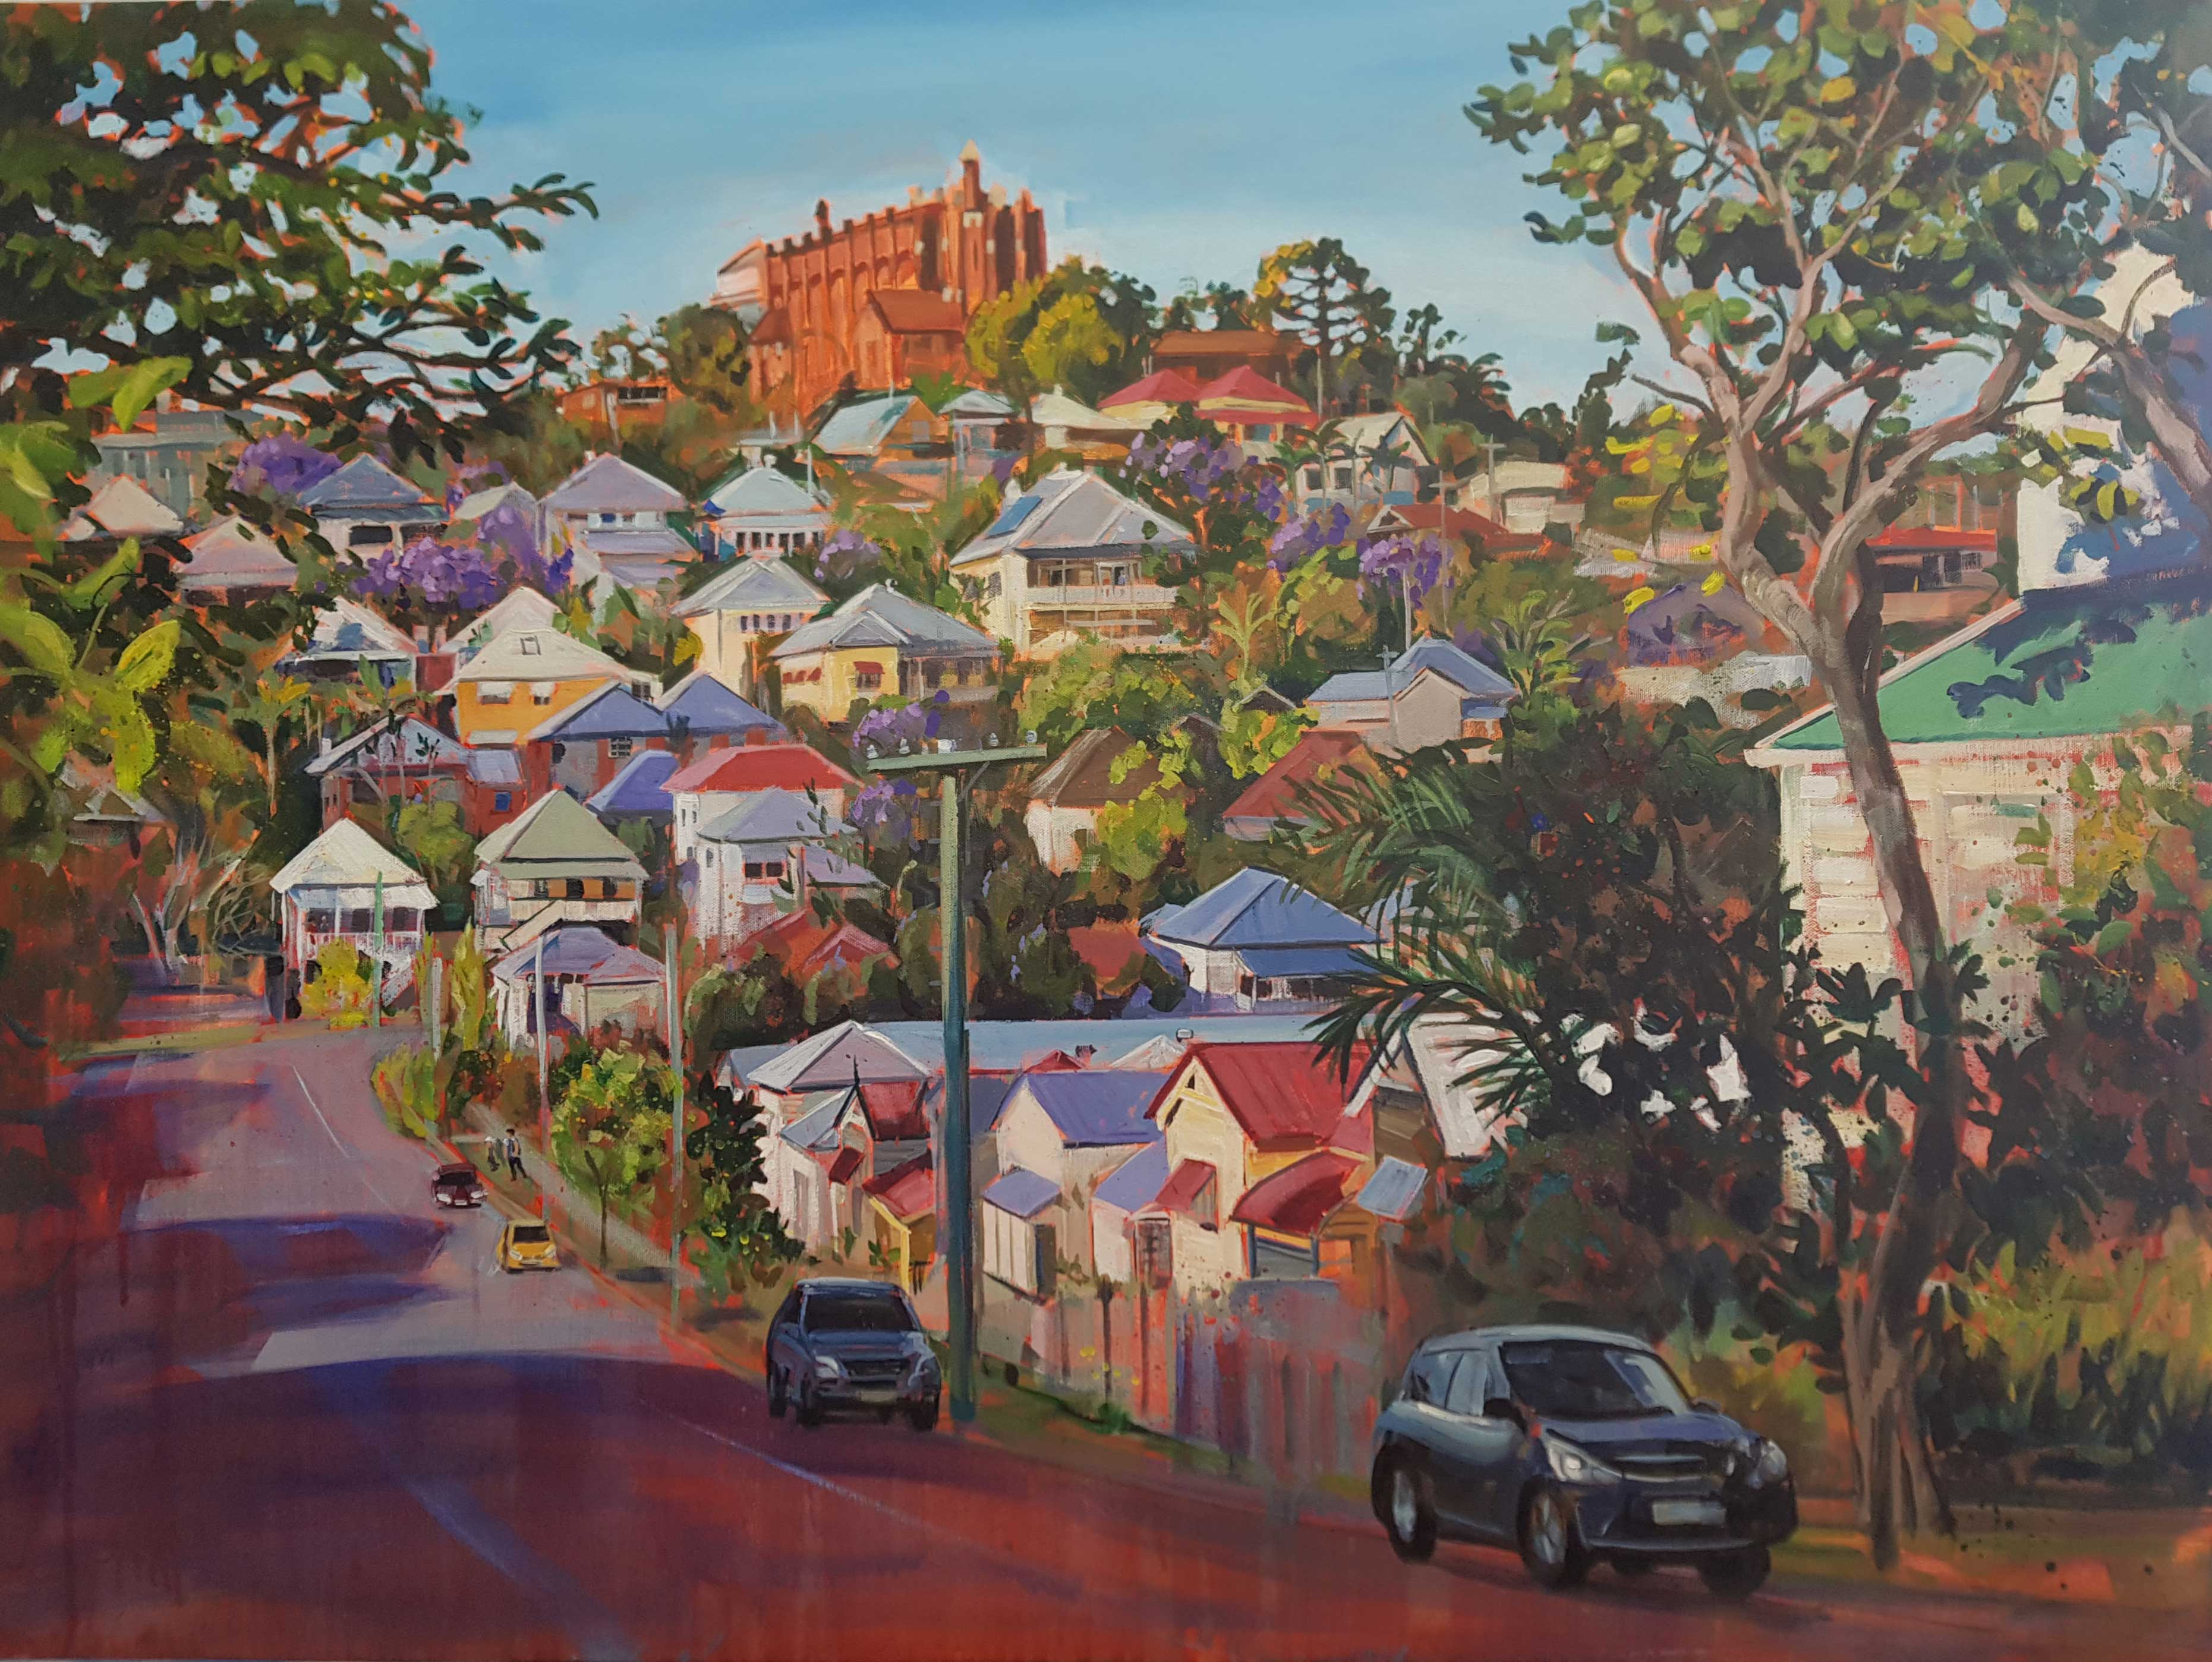 St Brigid's hill, Jacaranda season